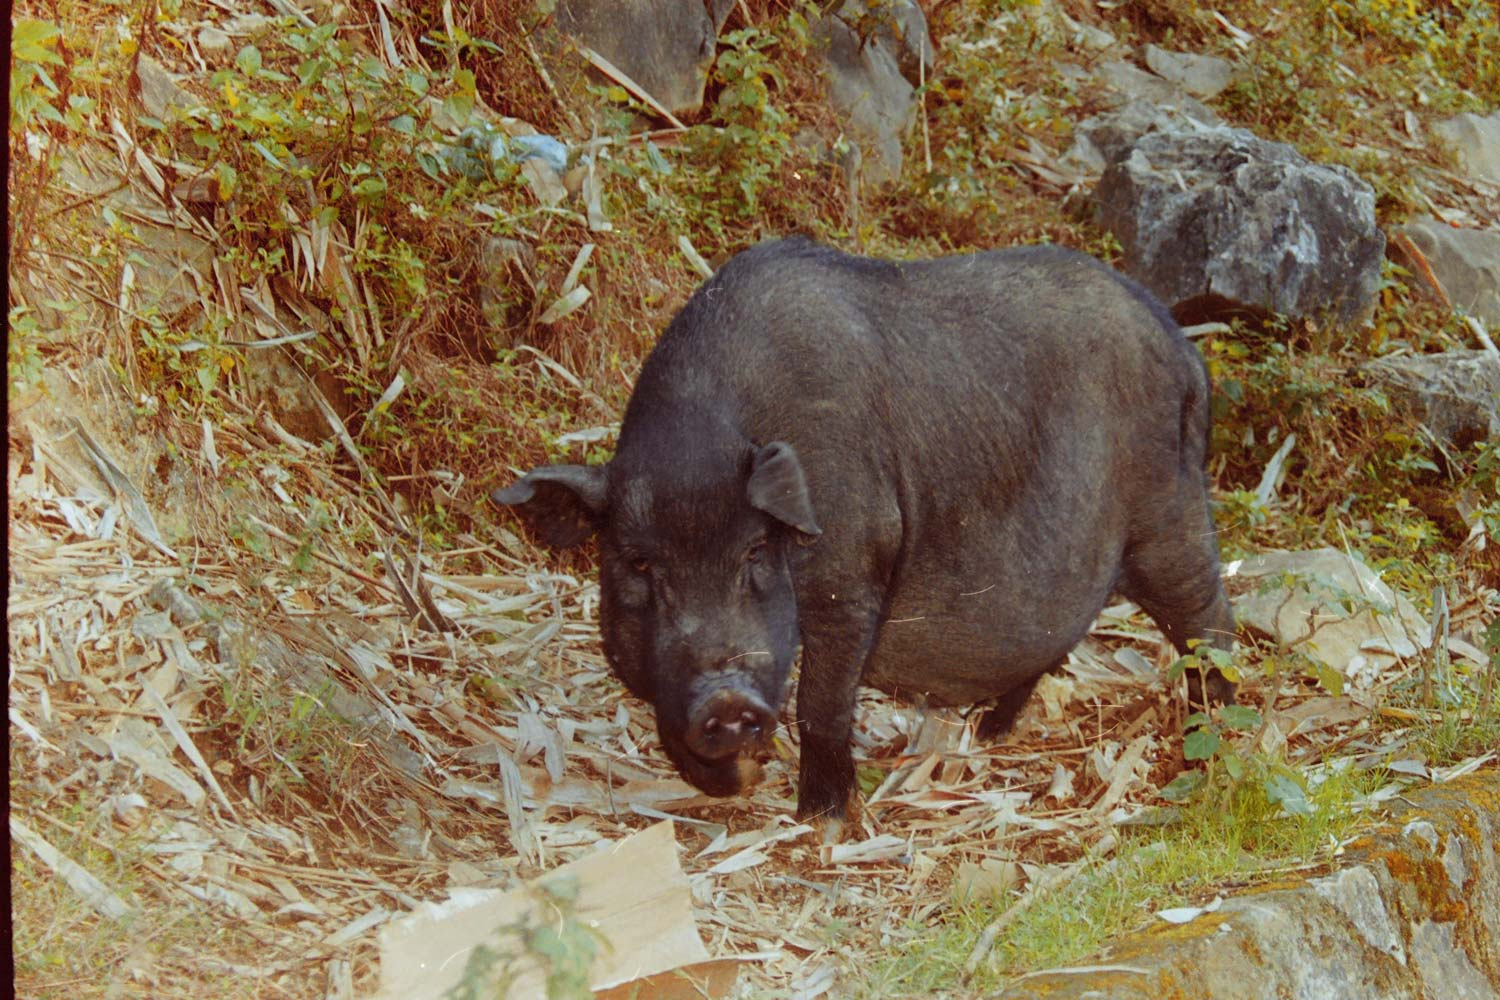 Image of a Vietnamese pot-bellied pig